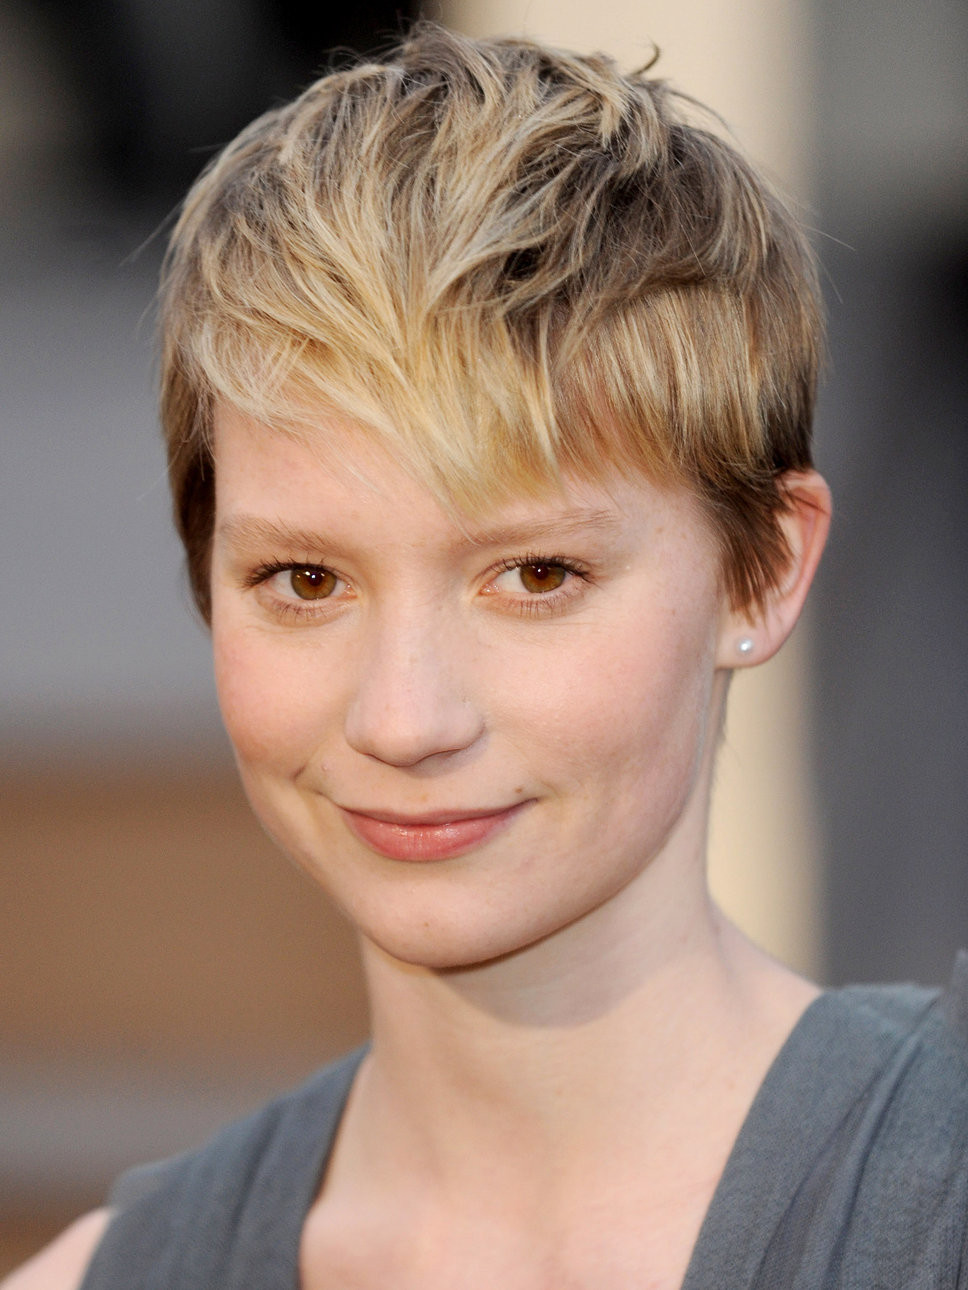 Best ideas about Cute Pixie Hairstyles . Save or Pin 40 Cute Short Hairstyles Which Are Outstanding SloDive Now.